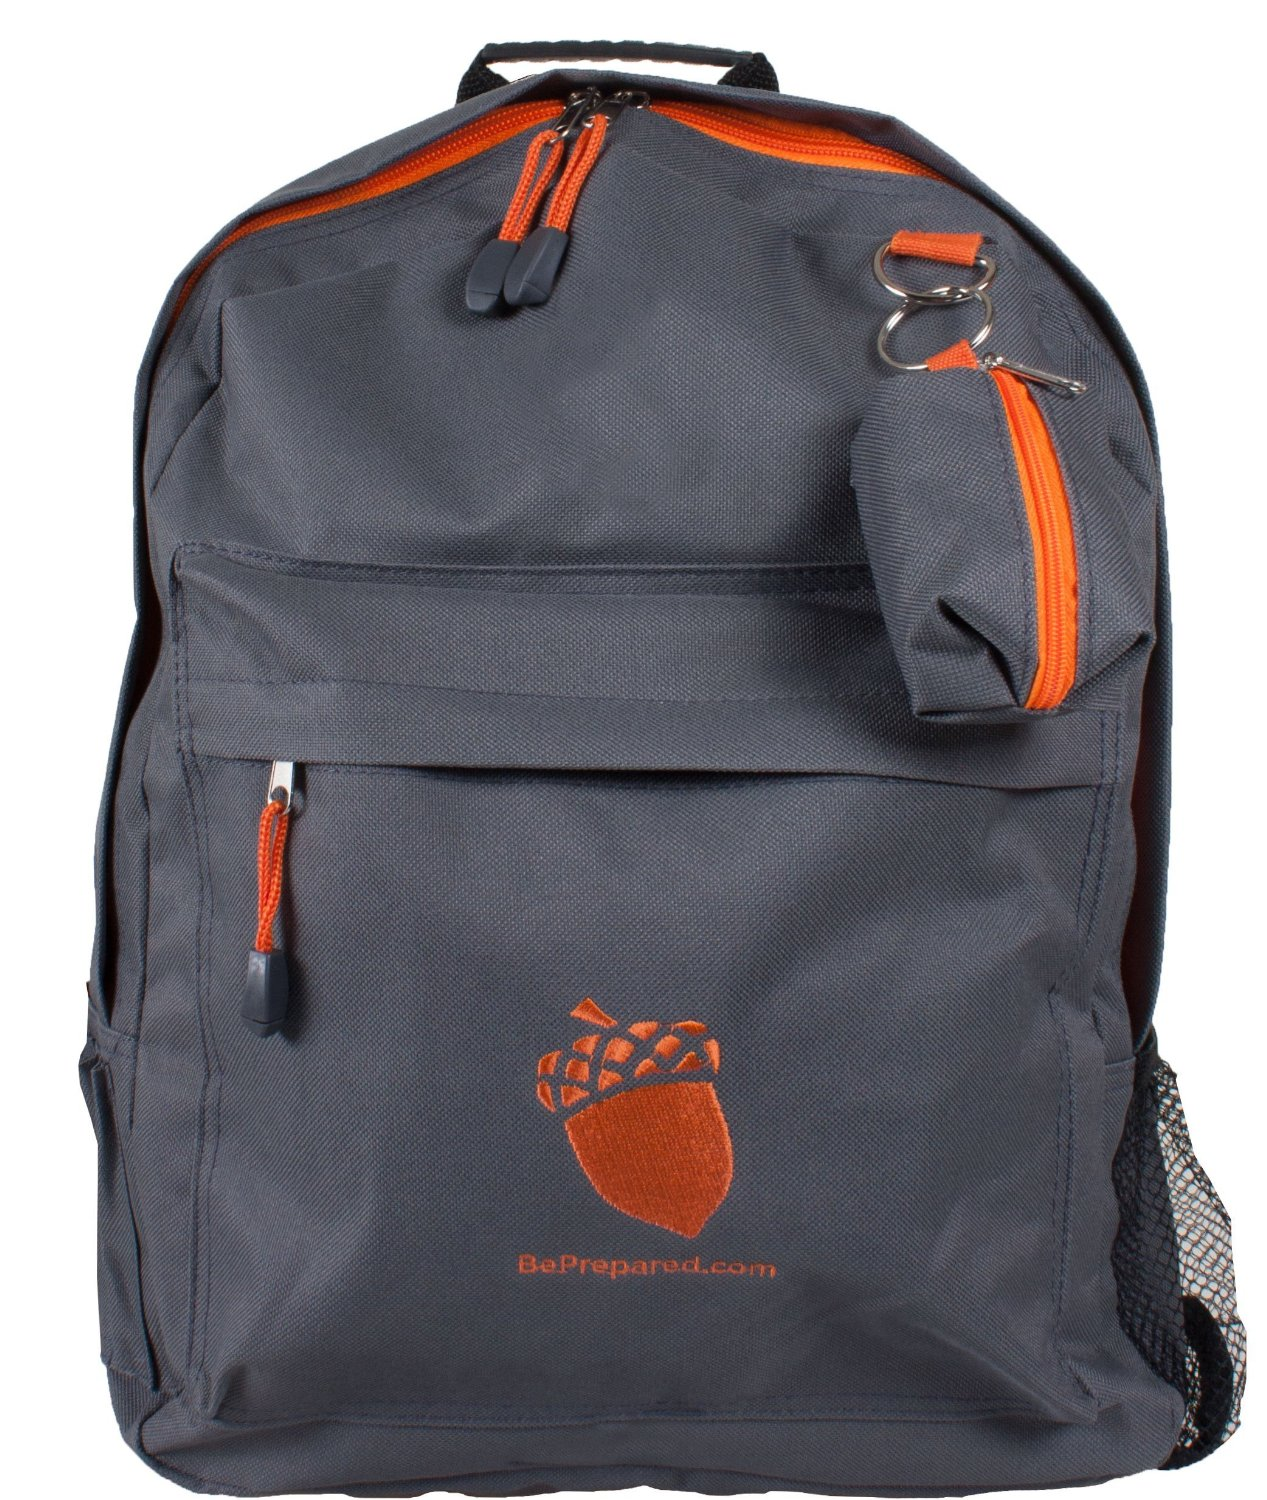 debc6e1828b6 Get Quotations · Emergency Essentials Large Backpack